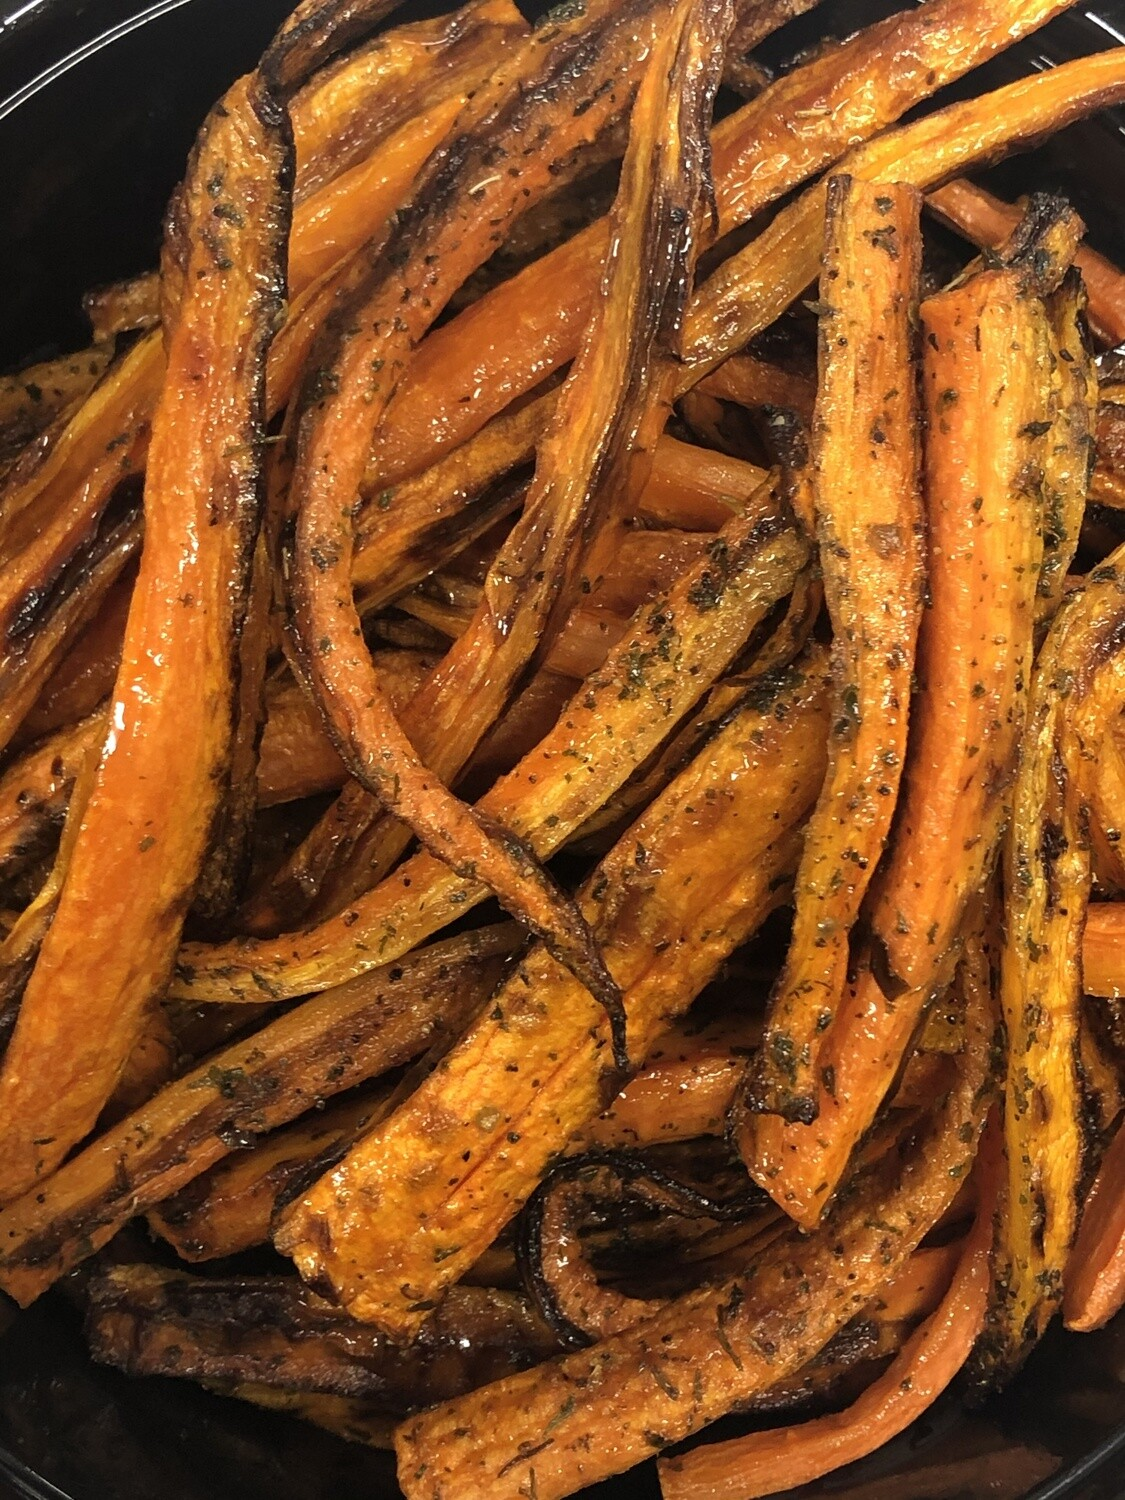 Herb Roasted Carrots Family Side - 16oz roasted carrots tossed with herbs and seasoned